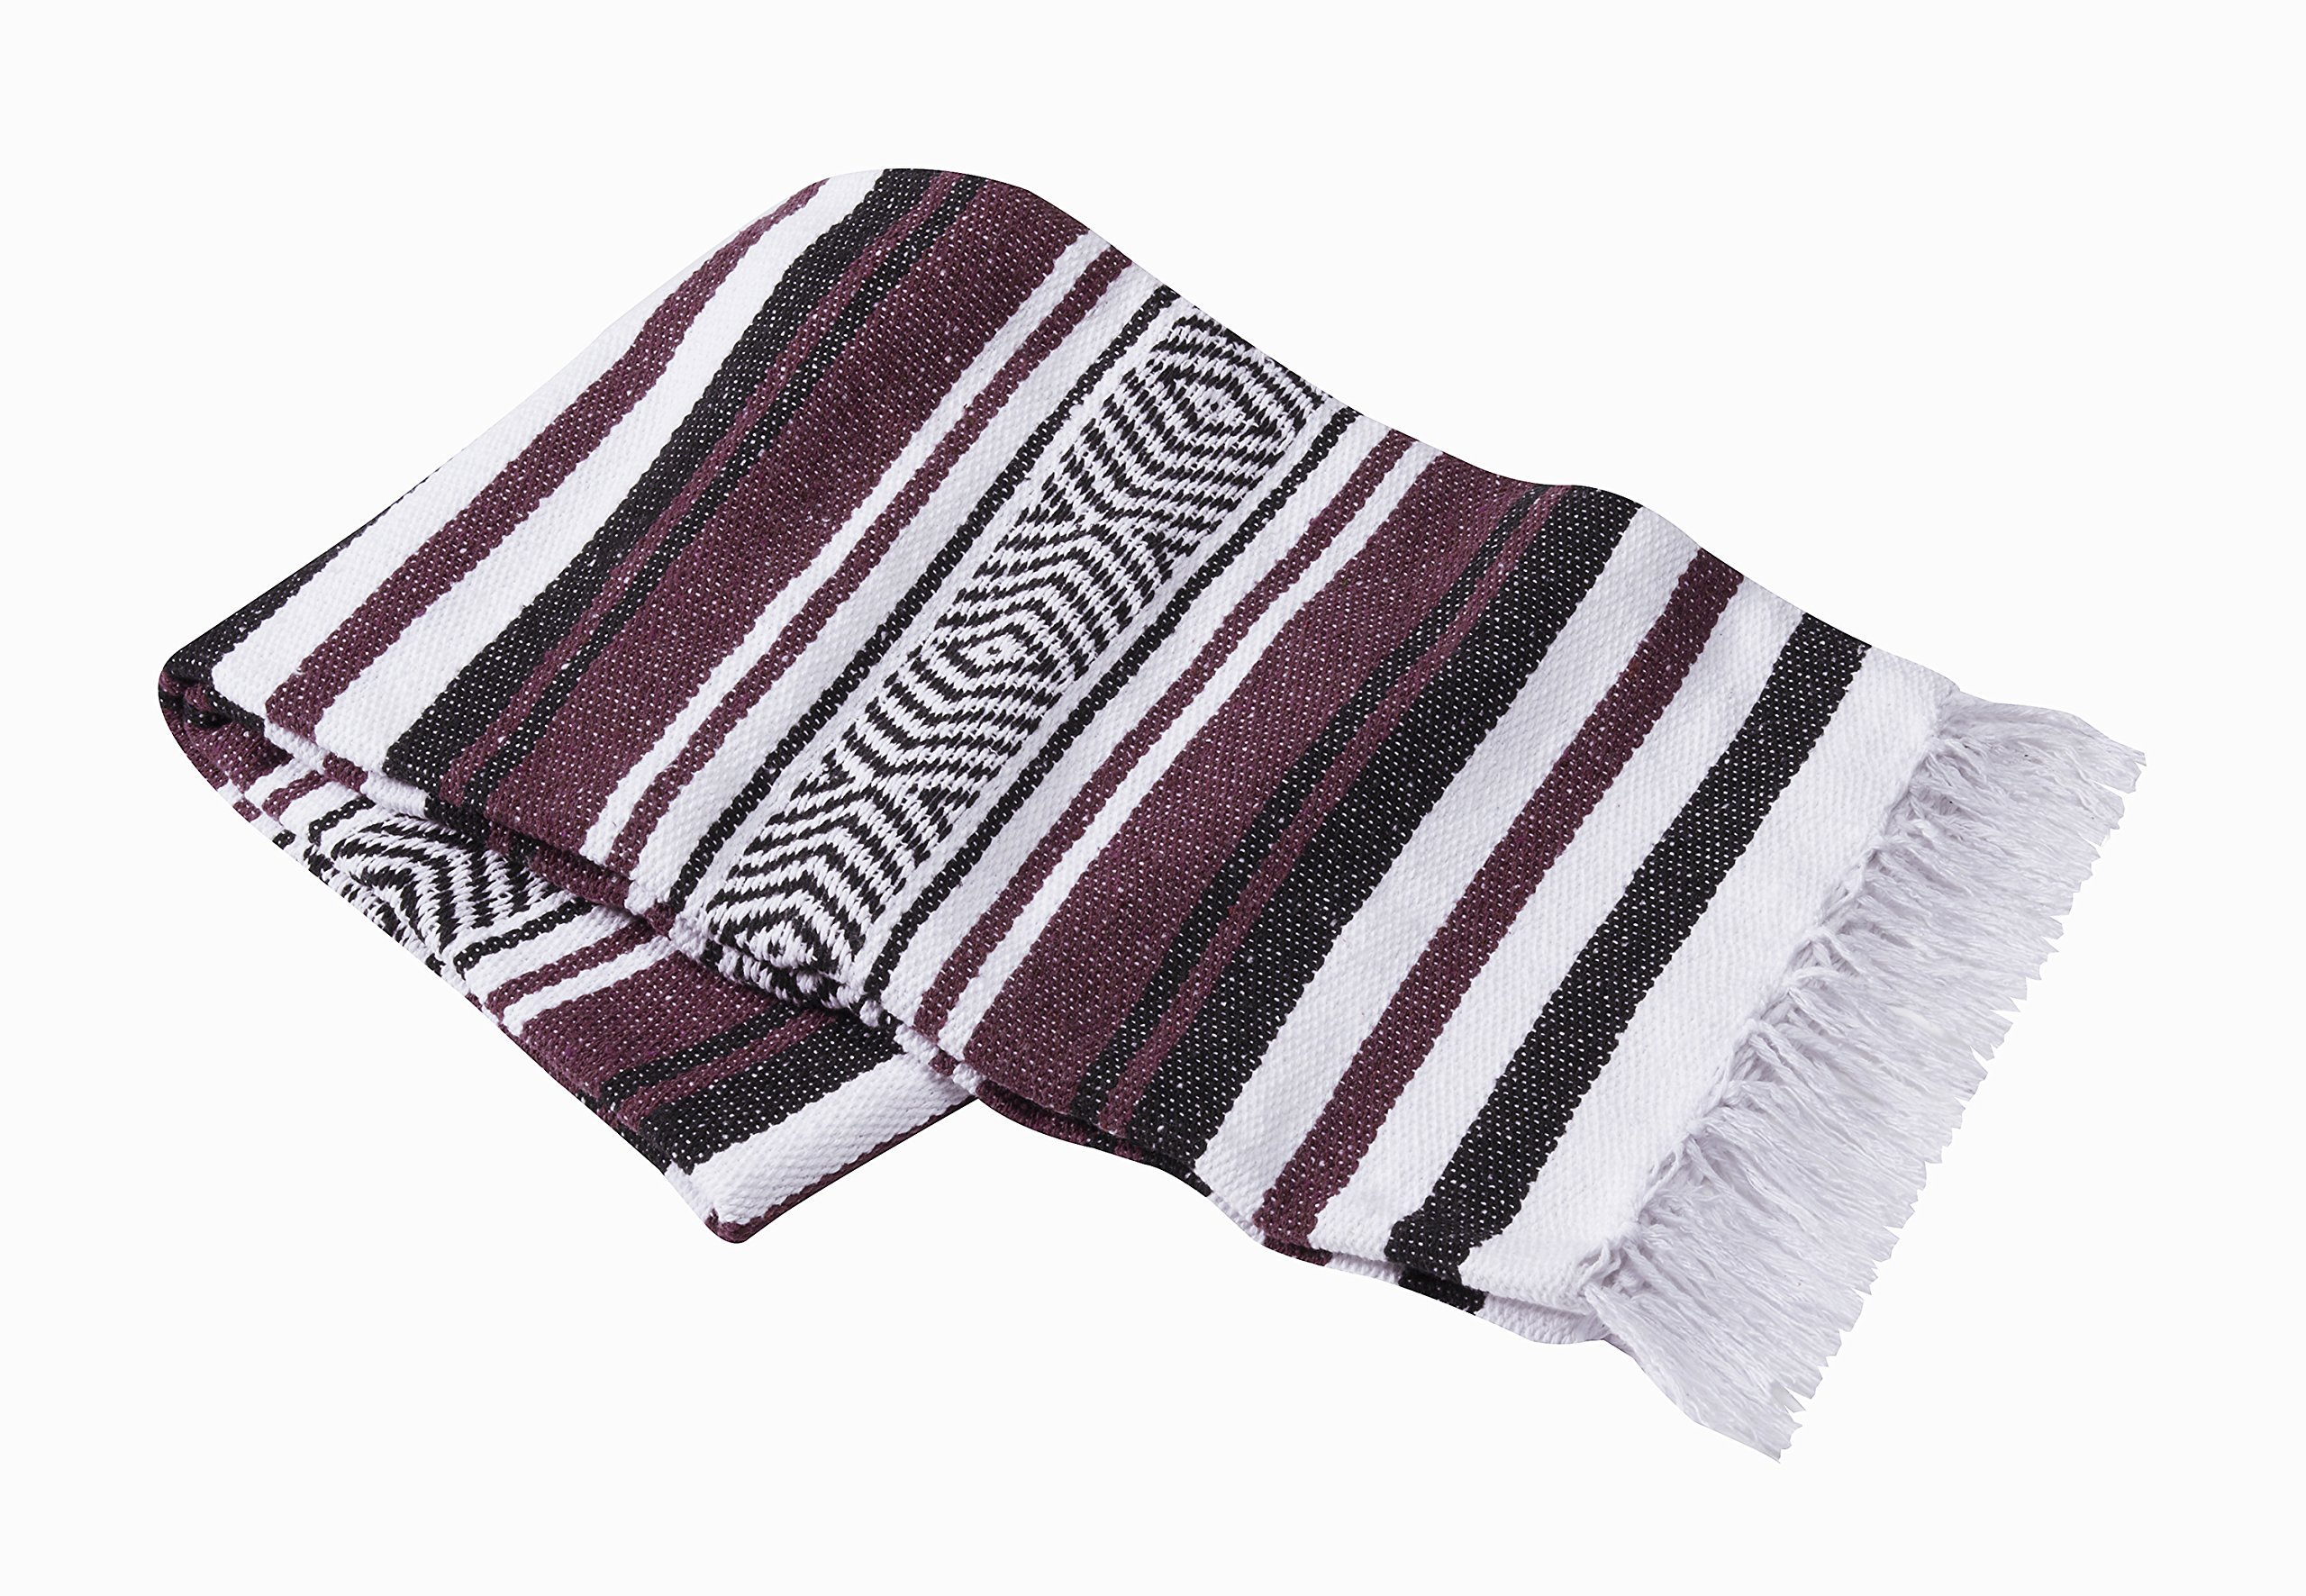 Vera Cruz 10 Pack Mexican Yoga Blankets (Burgundy/White/Black)